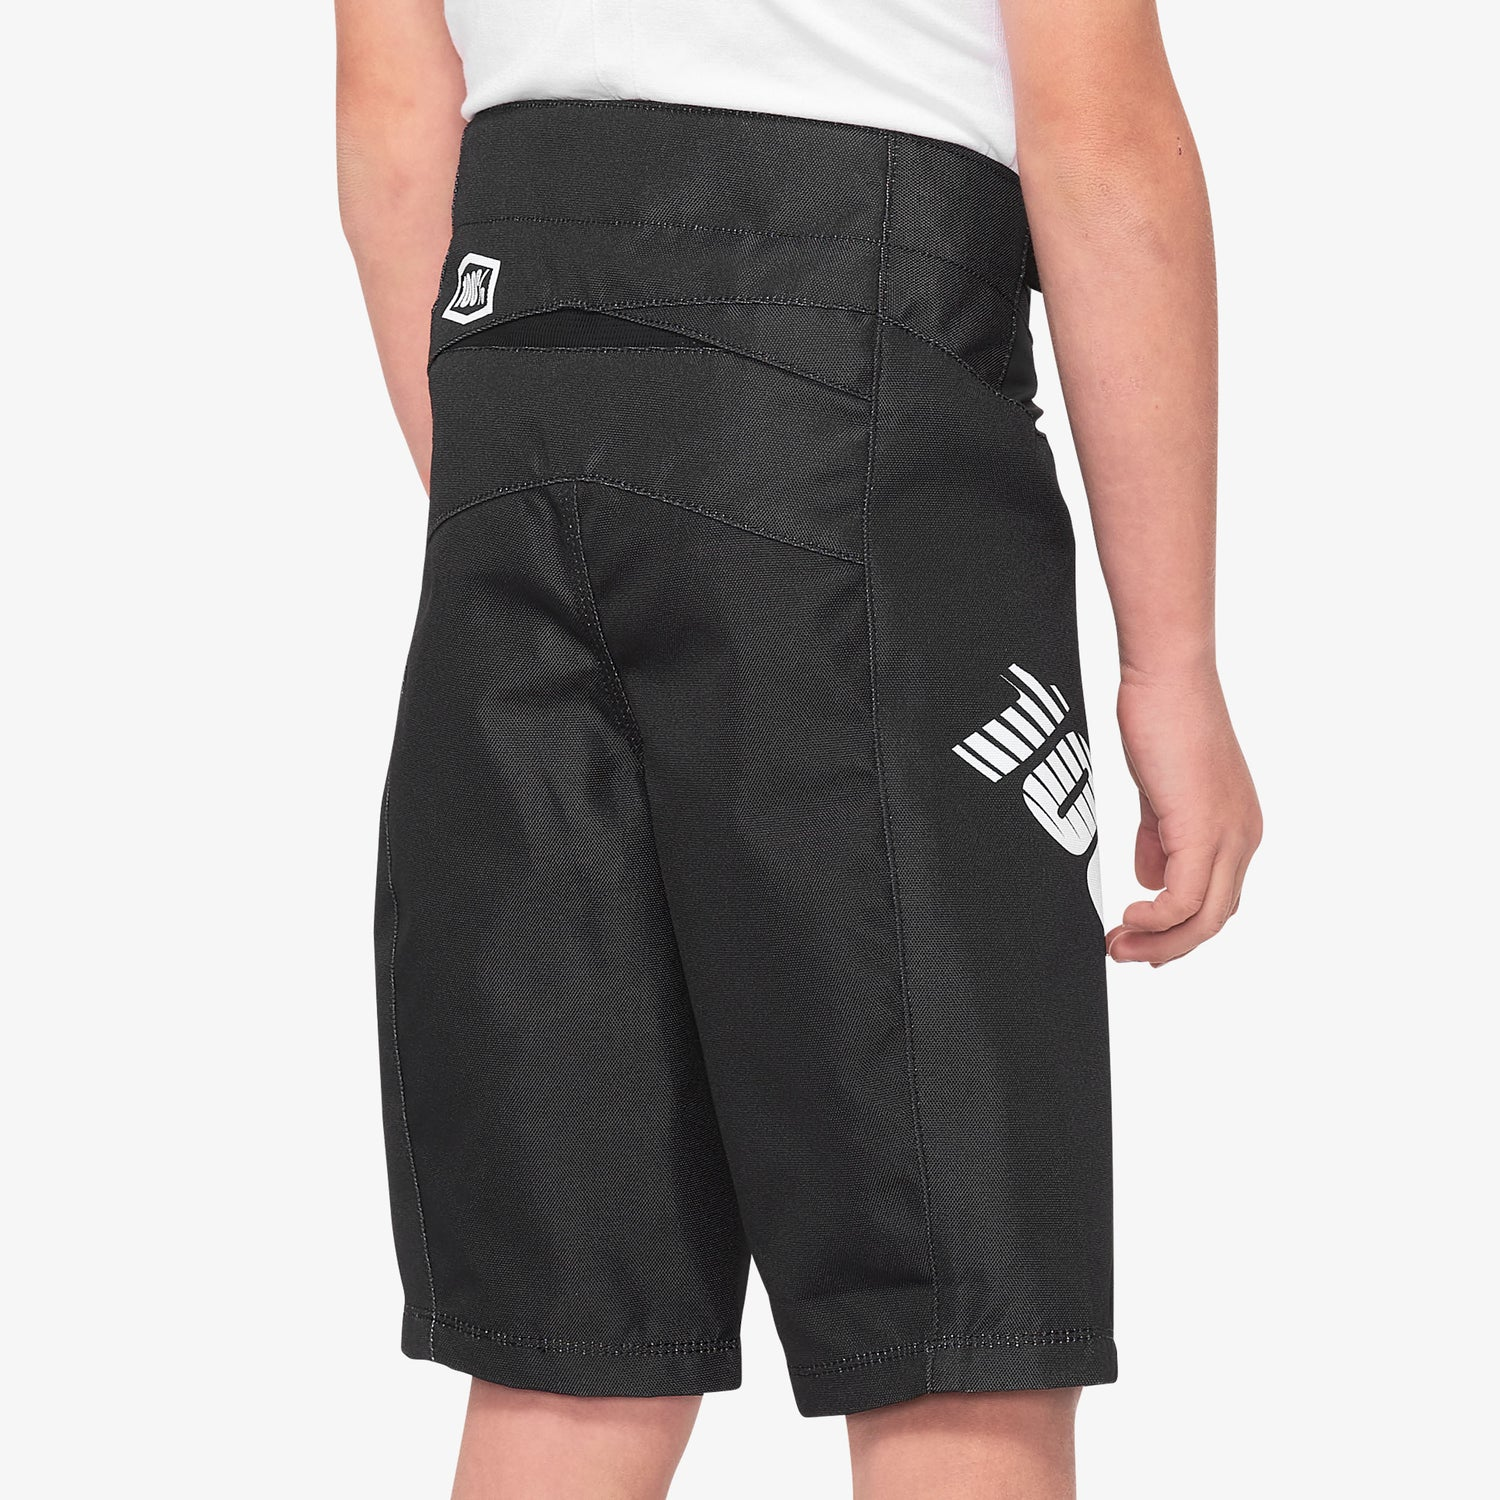 R-CORE DH Shorts - Black - Youth